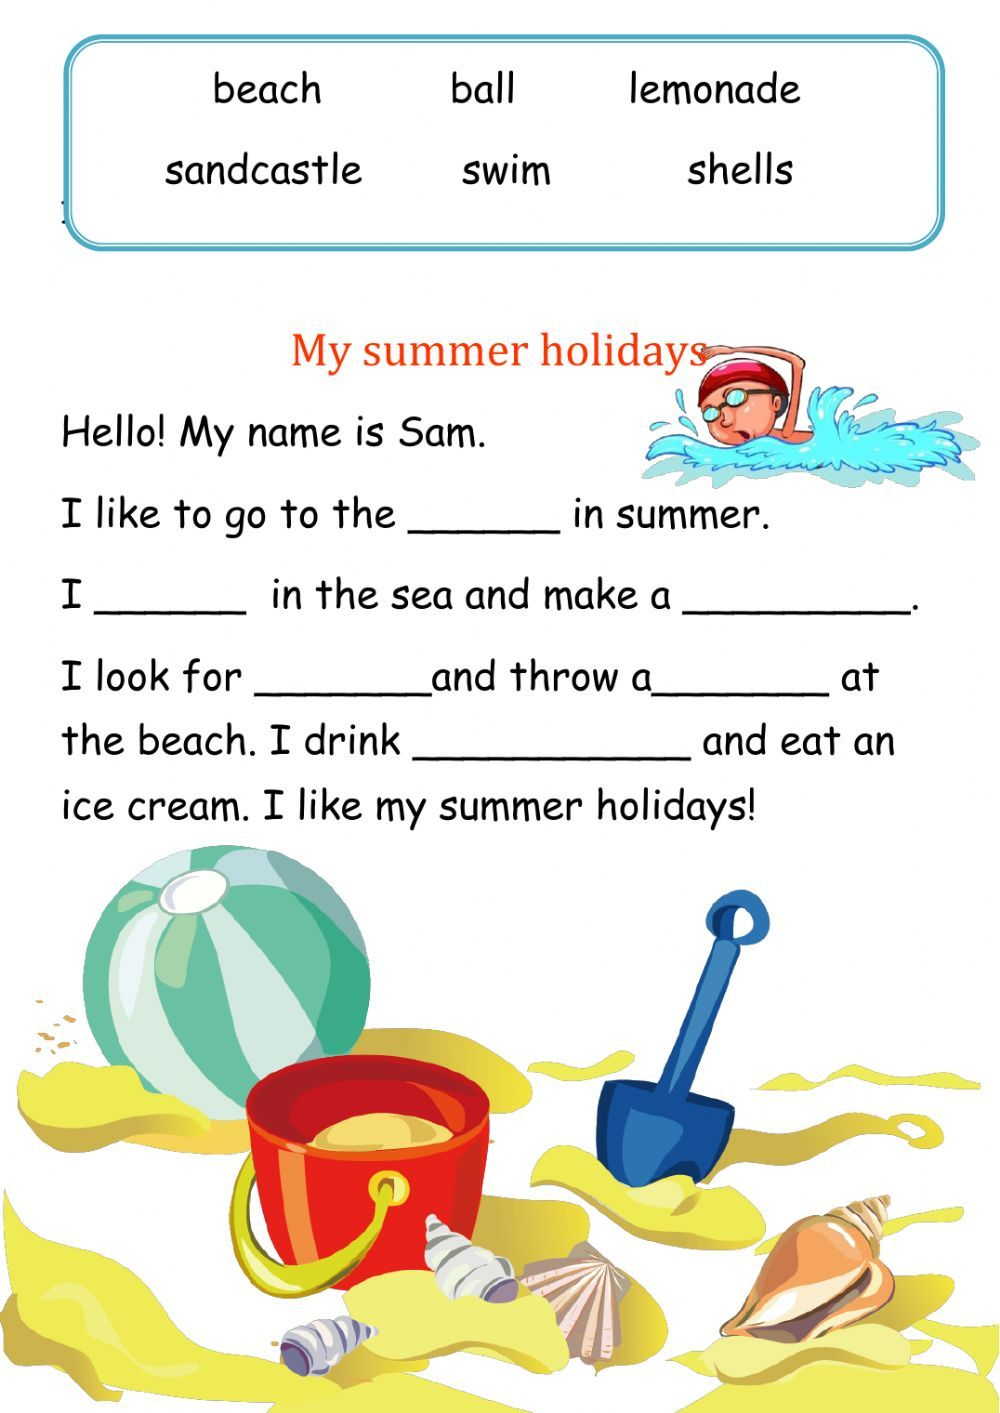 small resolution of Reading comprehension online activity for Grade 2. You can do the exercises  online or dow…   Reading comprehension